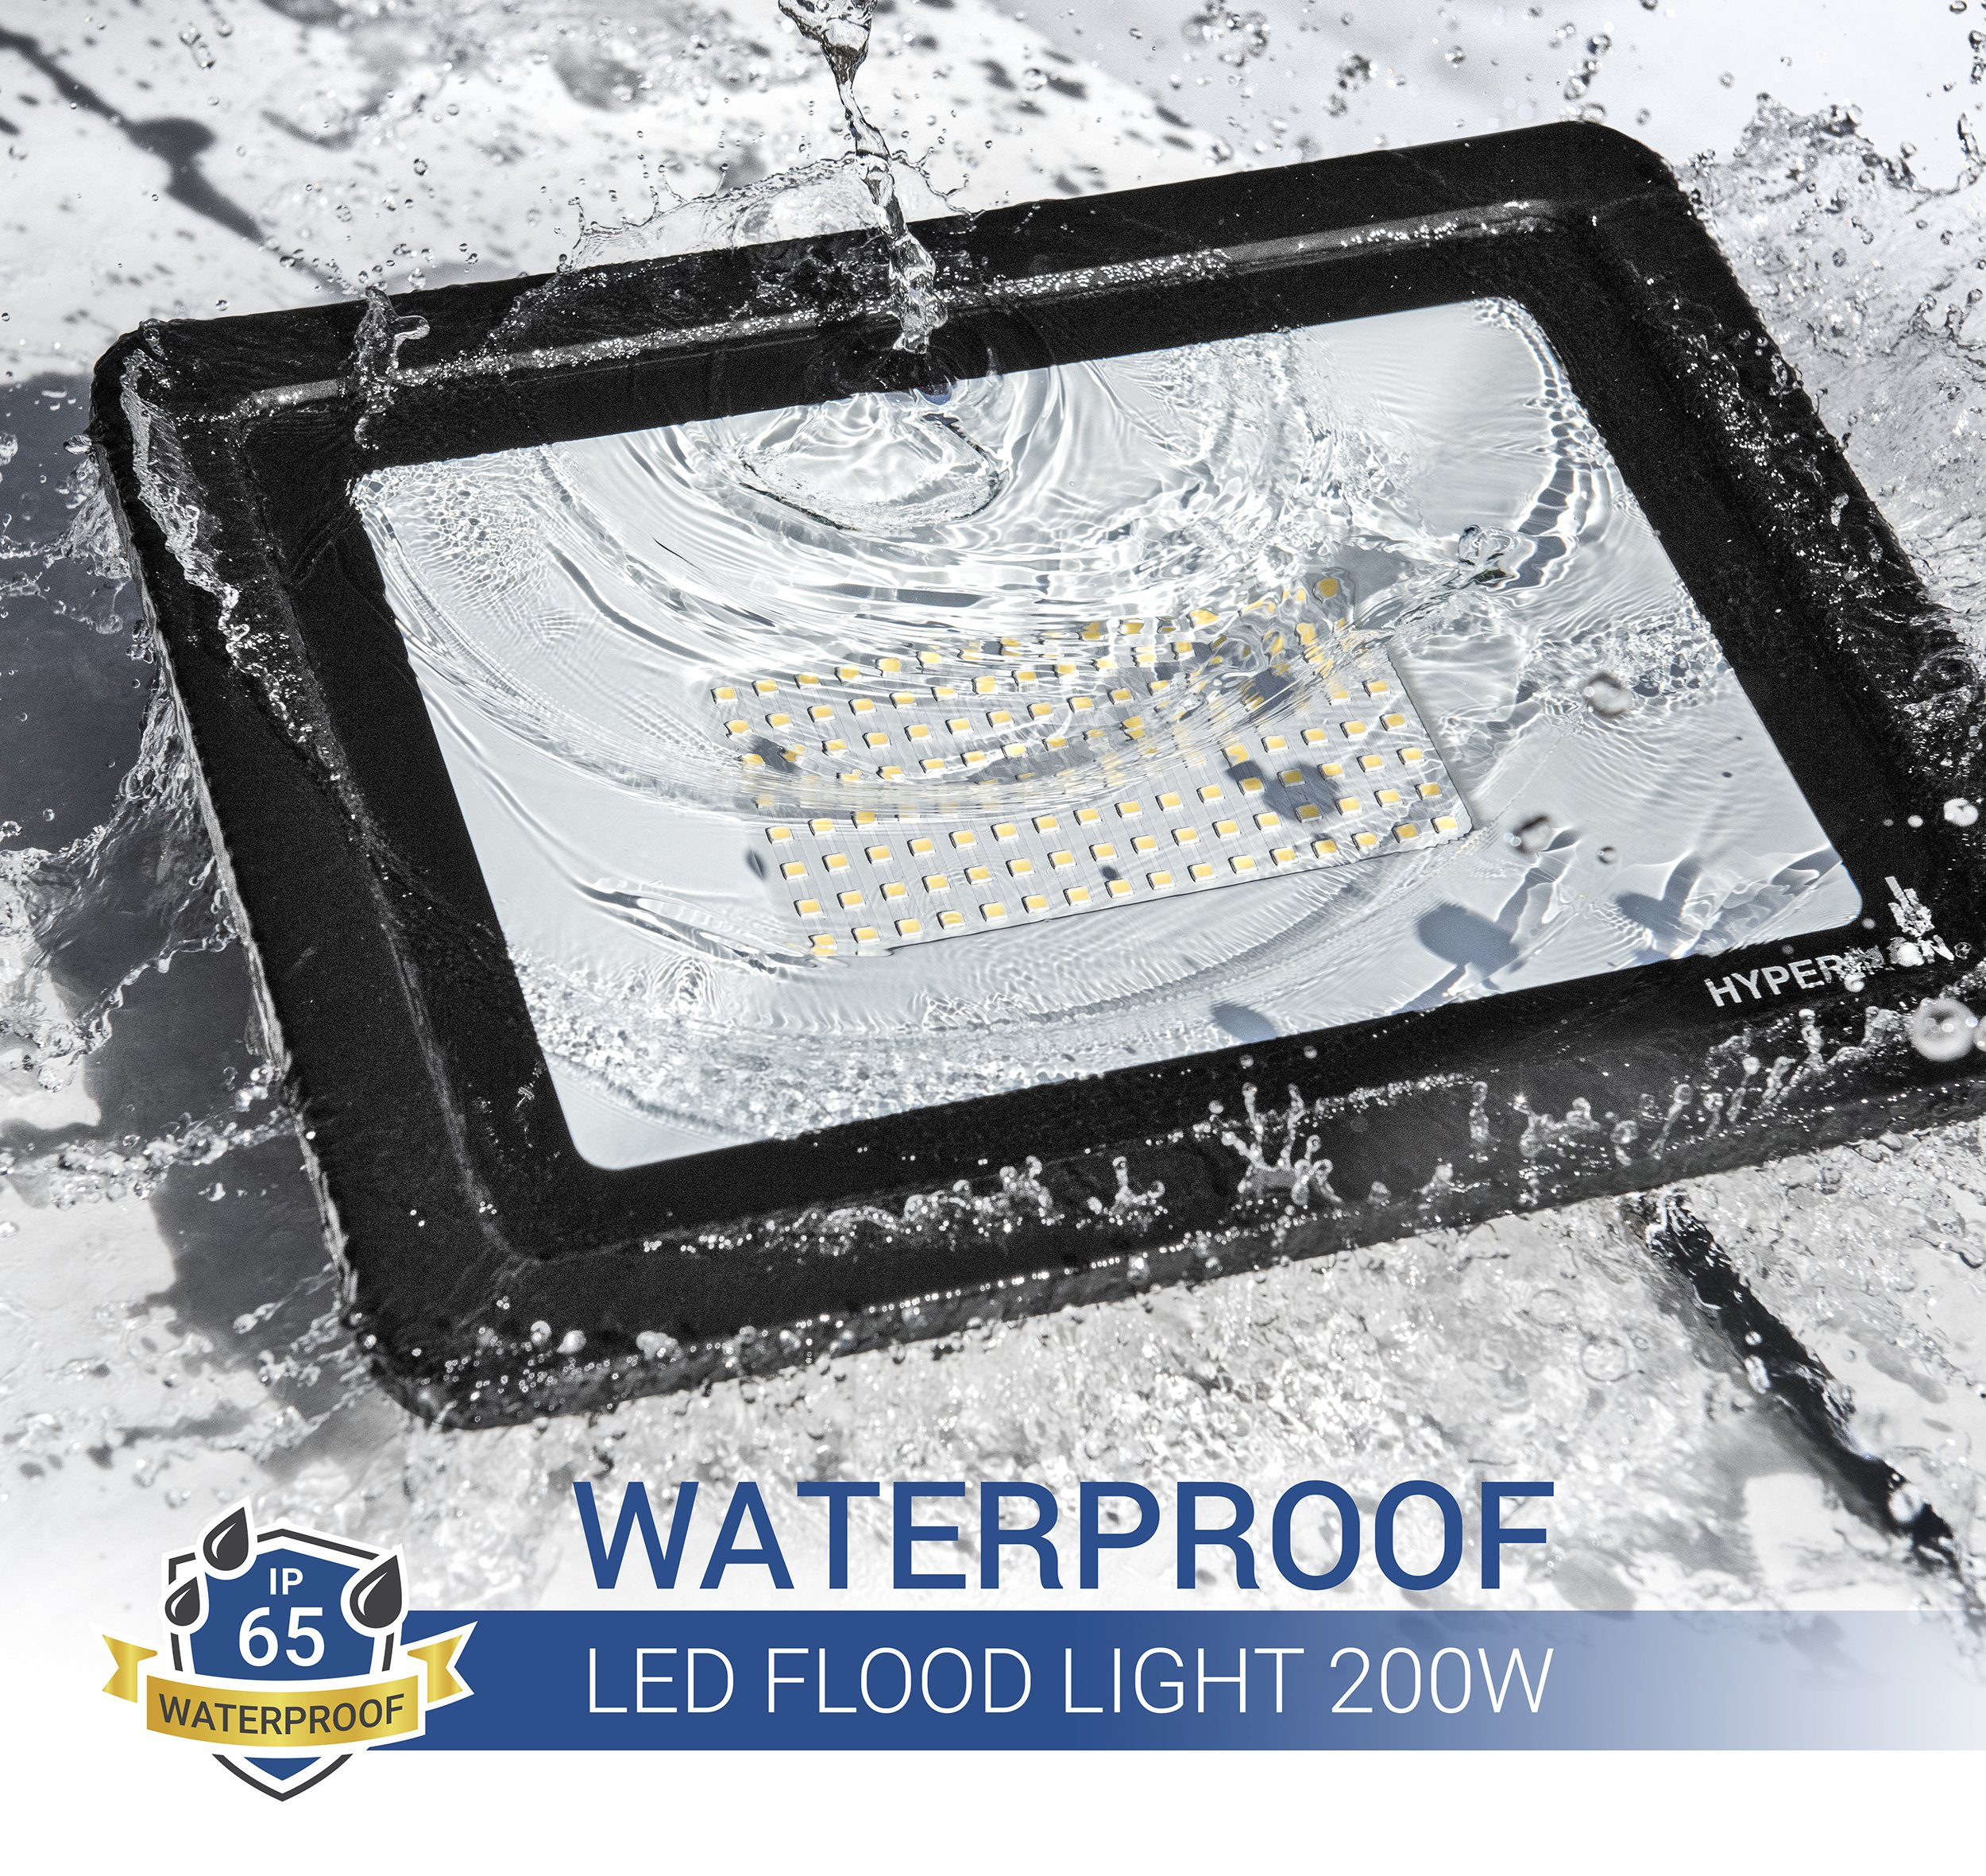 Hyperikon LED Flood Light 200W (1000 Watt Eq.) 180° Rotatable Bracket, 5000k,16000 Lm, Super Bright Outdoor LED Floodlight, Weatherproof IP65, Suitable for Dry and Damp Locations, 110V, 2-Pack by Hyperikon (Image #3)